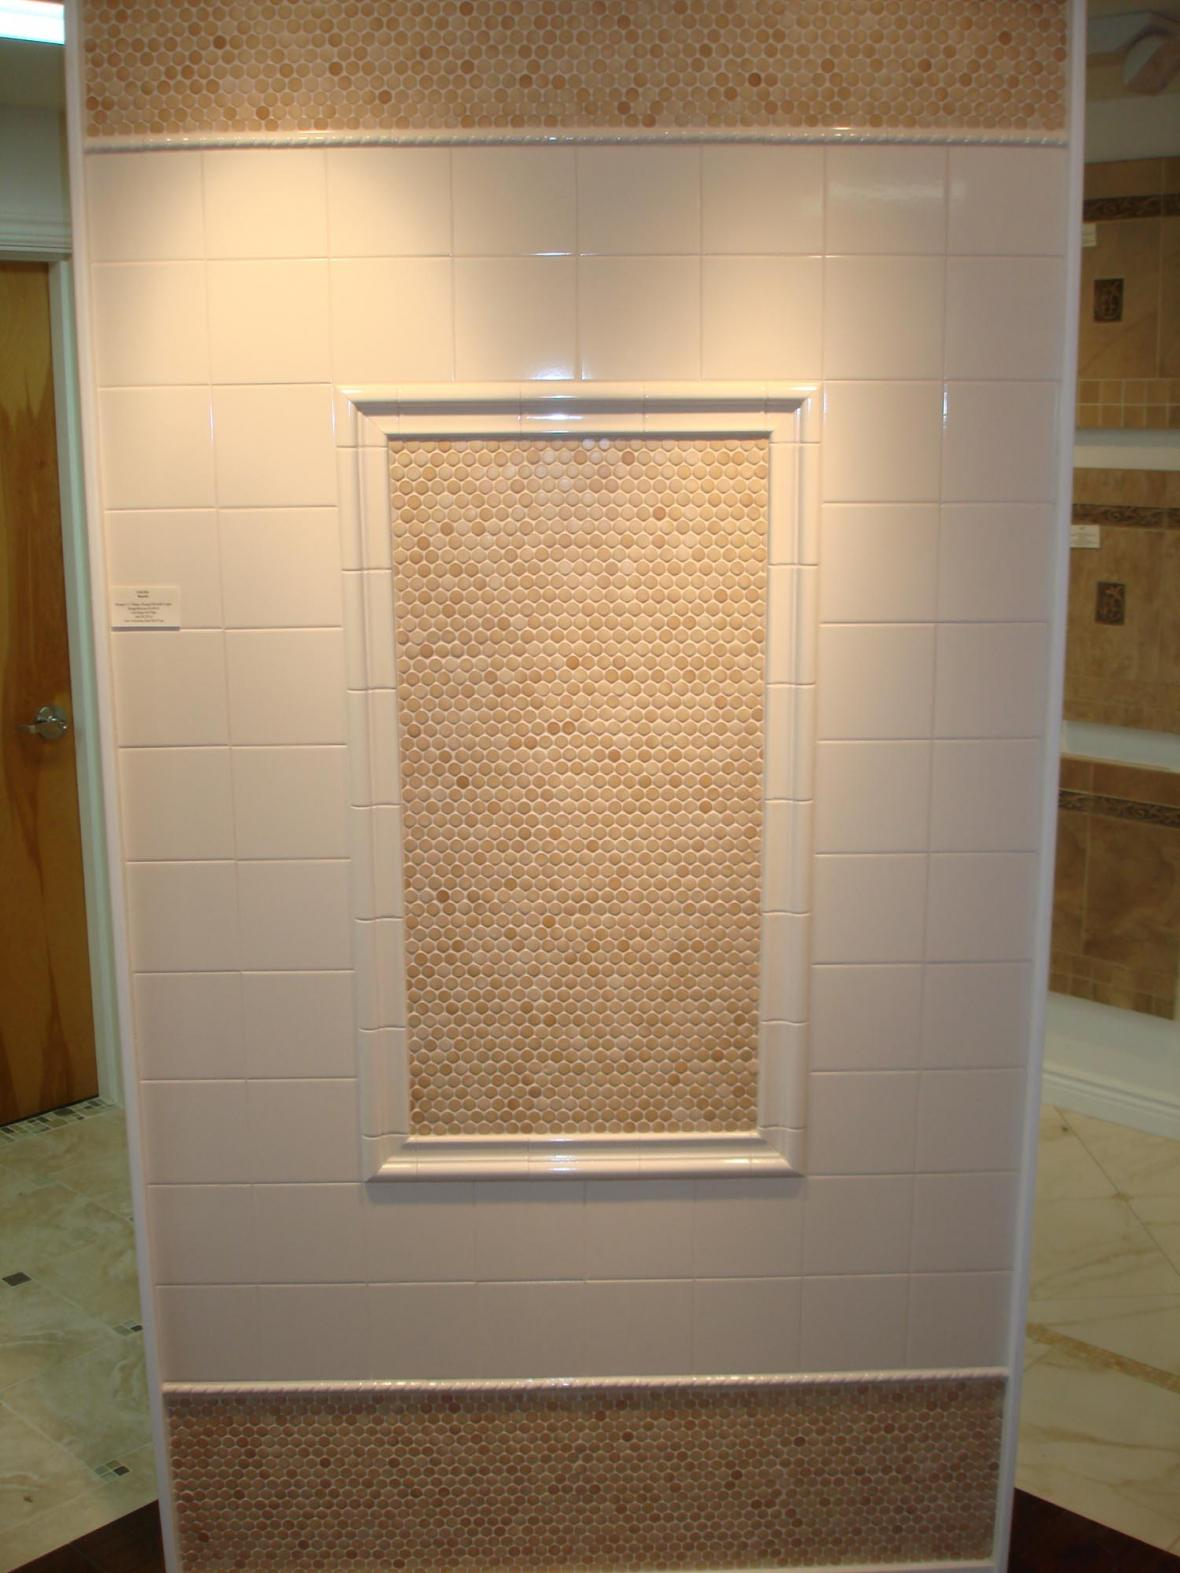 Ceramic mossaics and white 6x6 tile display